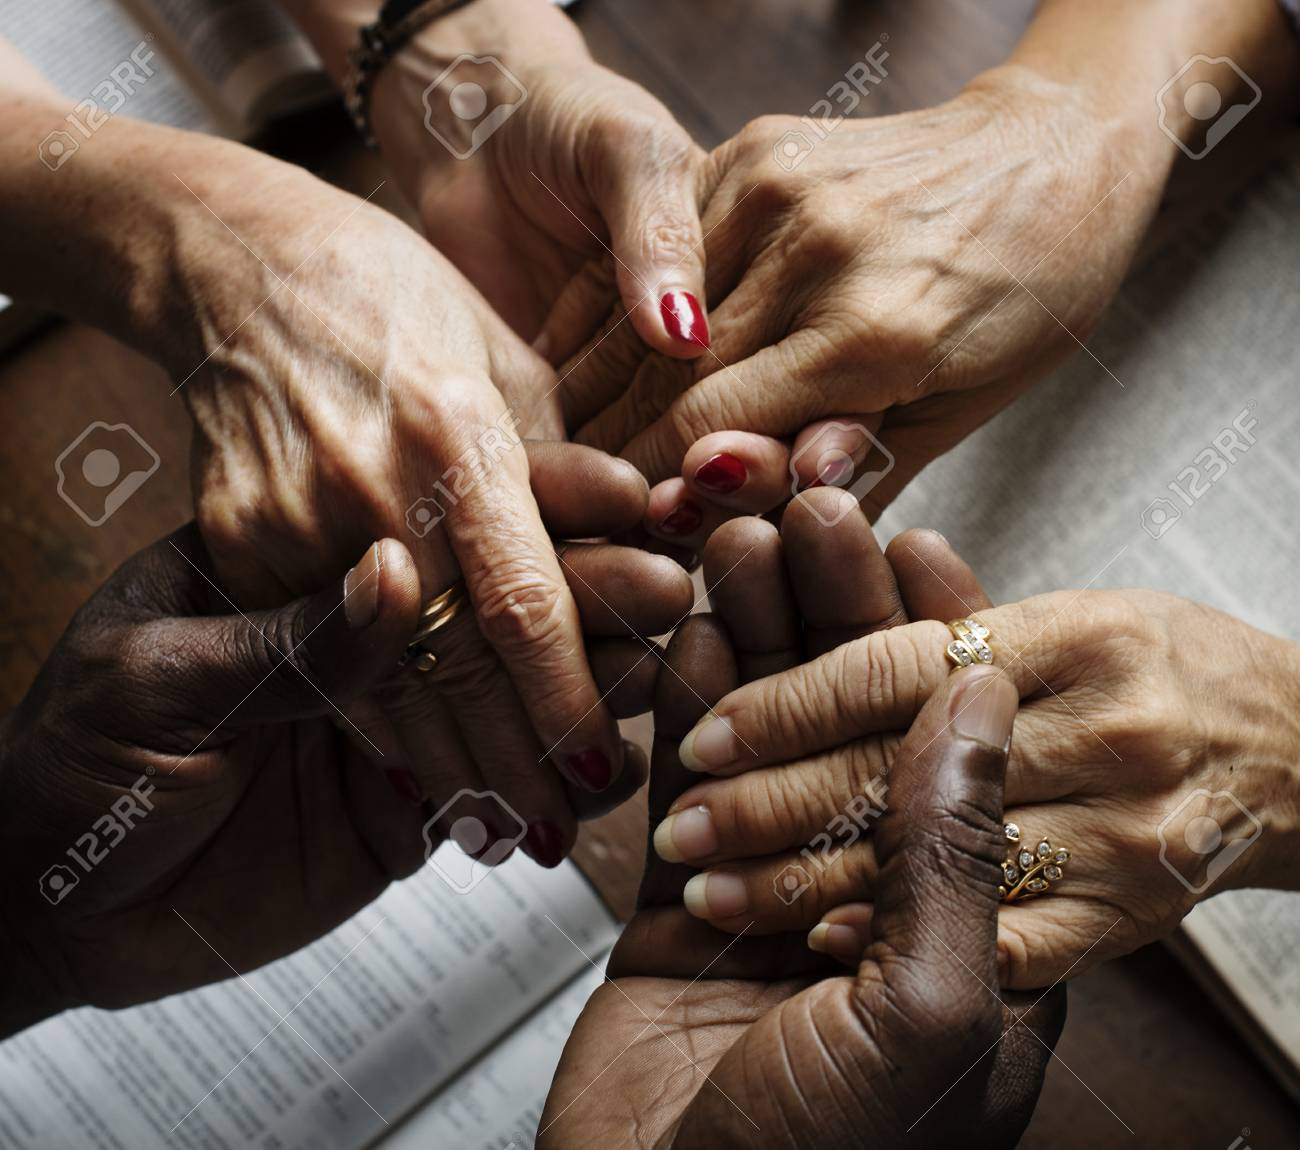 Group of people holding hands praying worship believe - 86192420